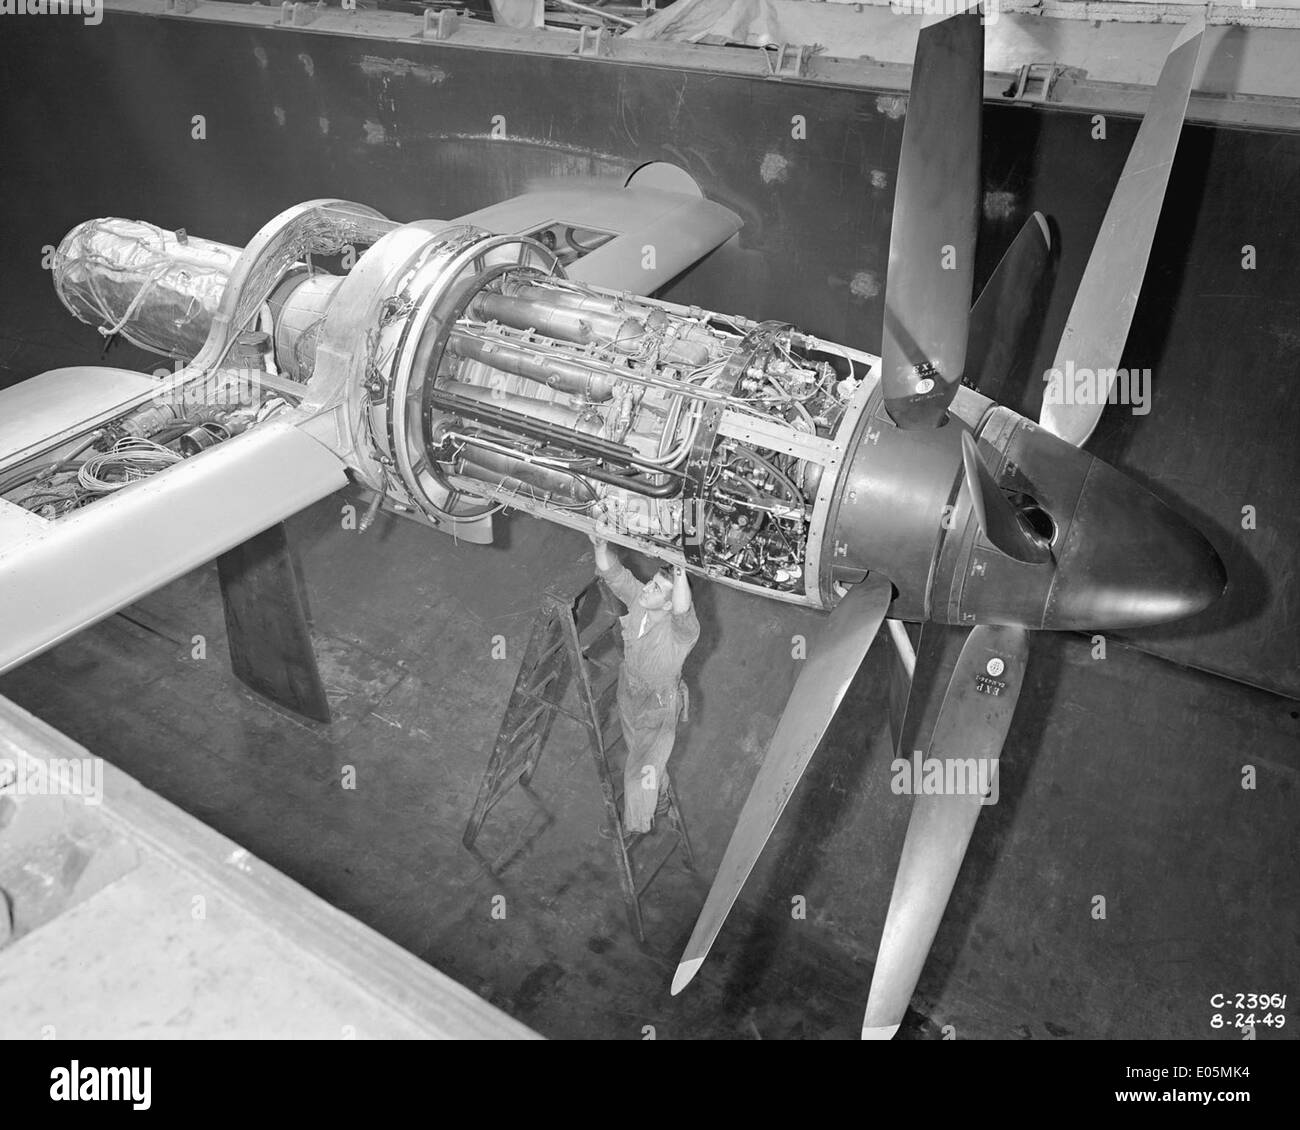 Python Engine Installed in Altitude Wind Tunnel - Stock Image